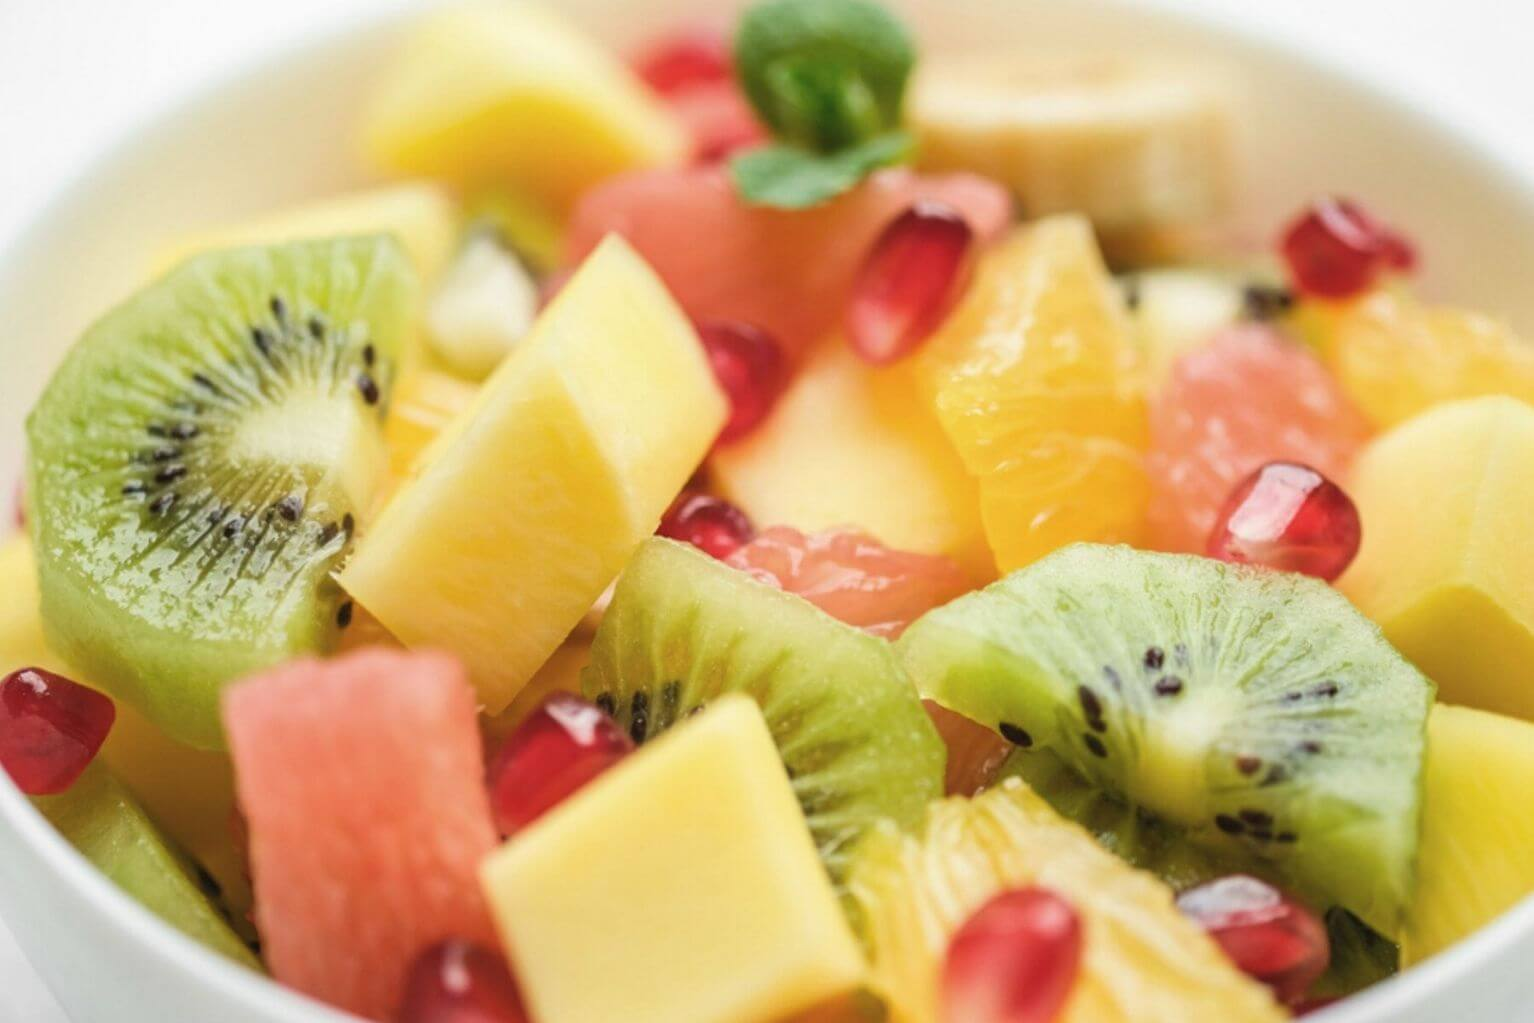 fruit bowl with diced kiwis, grapefruit, oranges, mango, and pomegranate